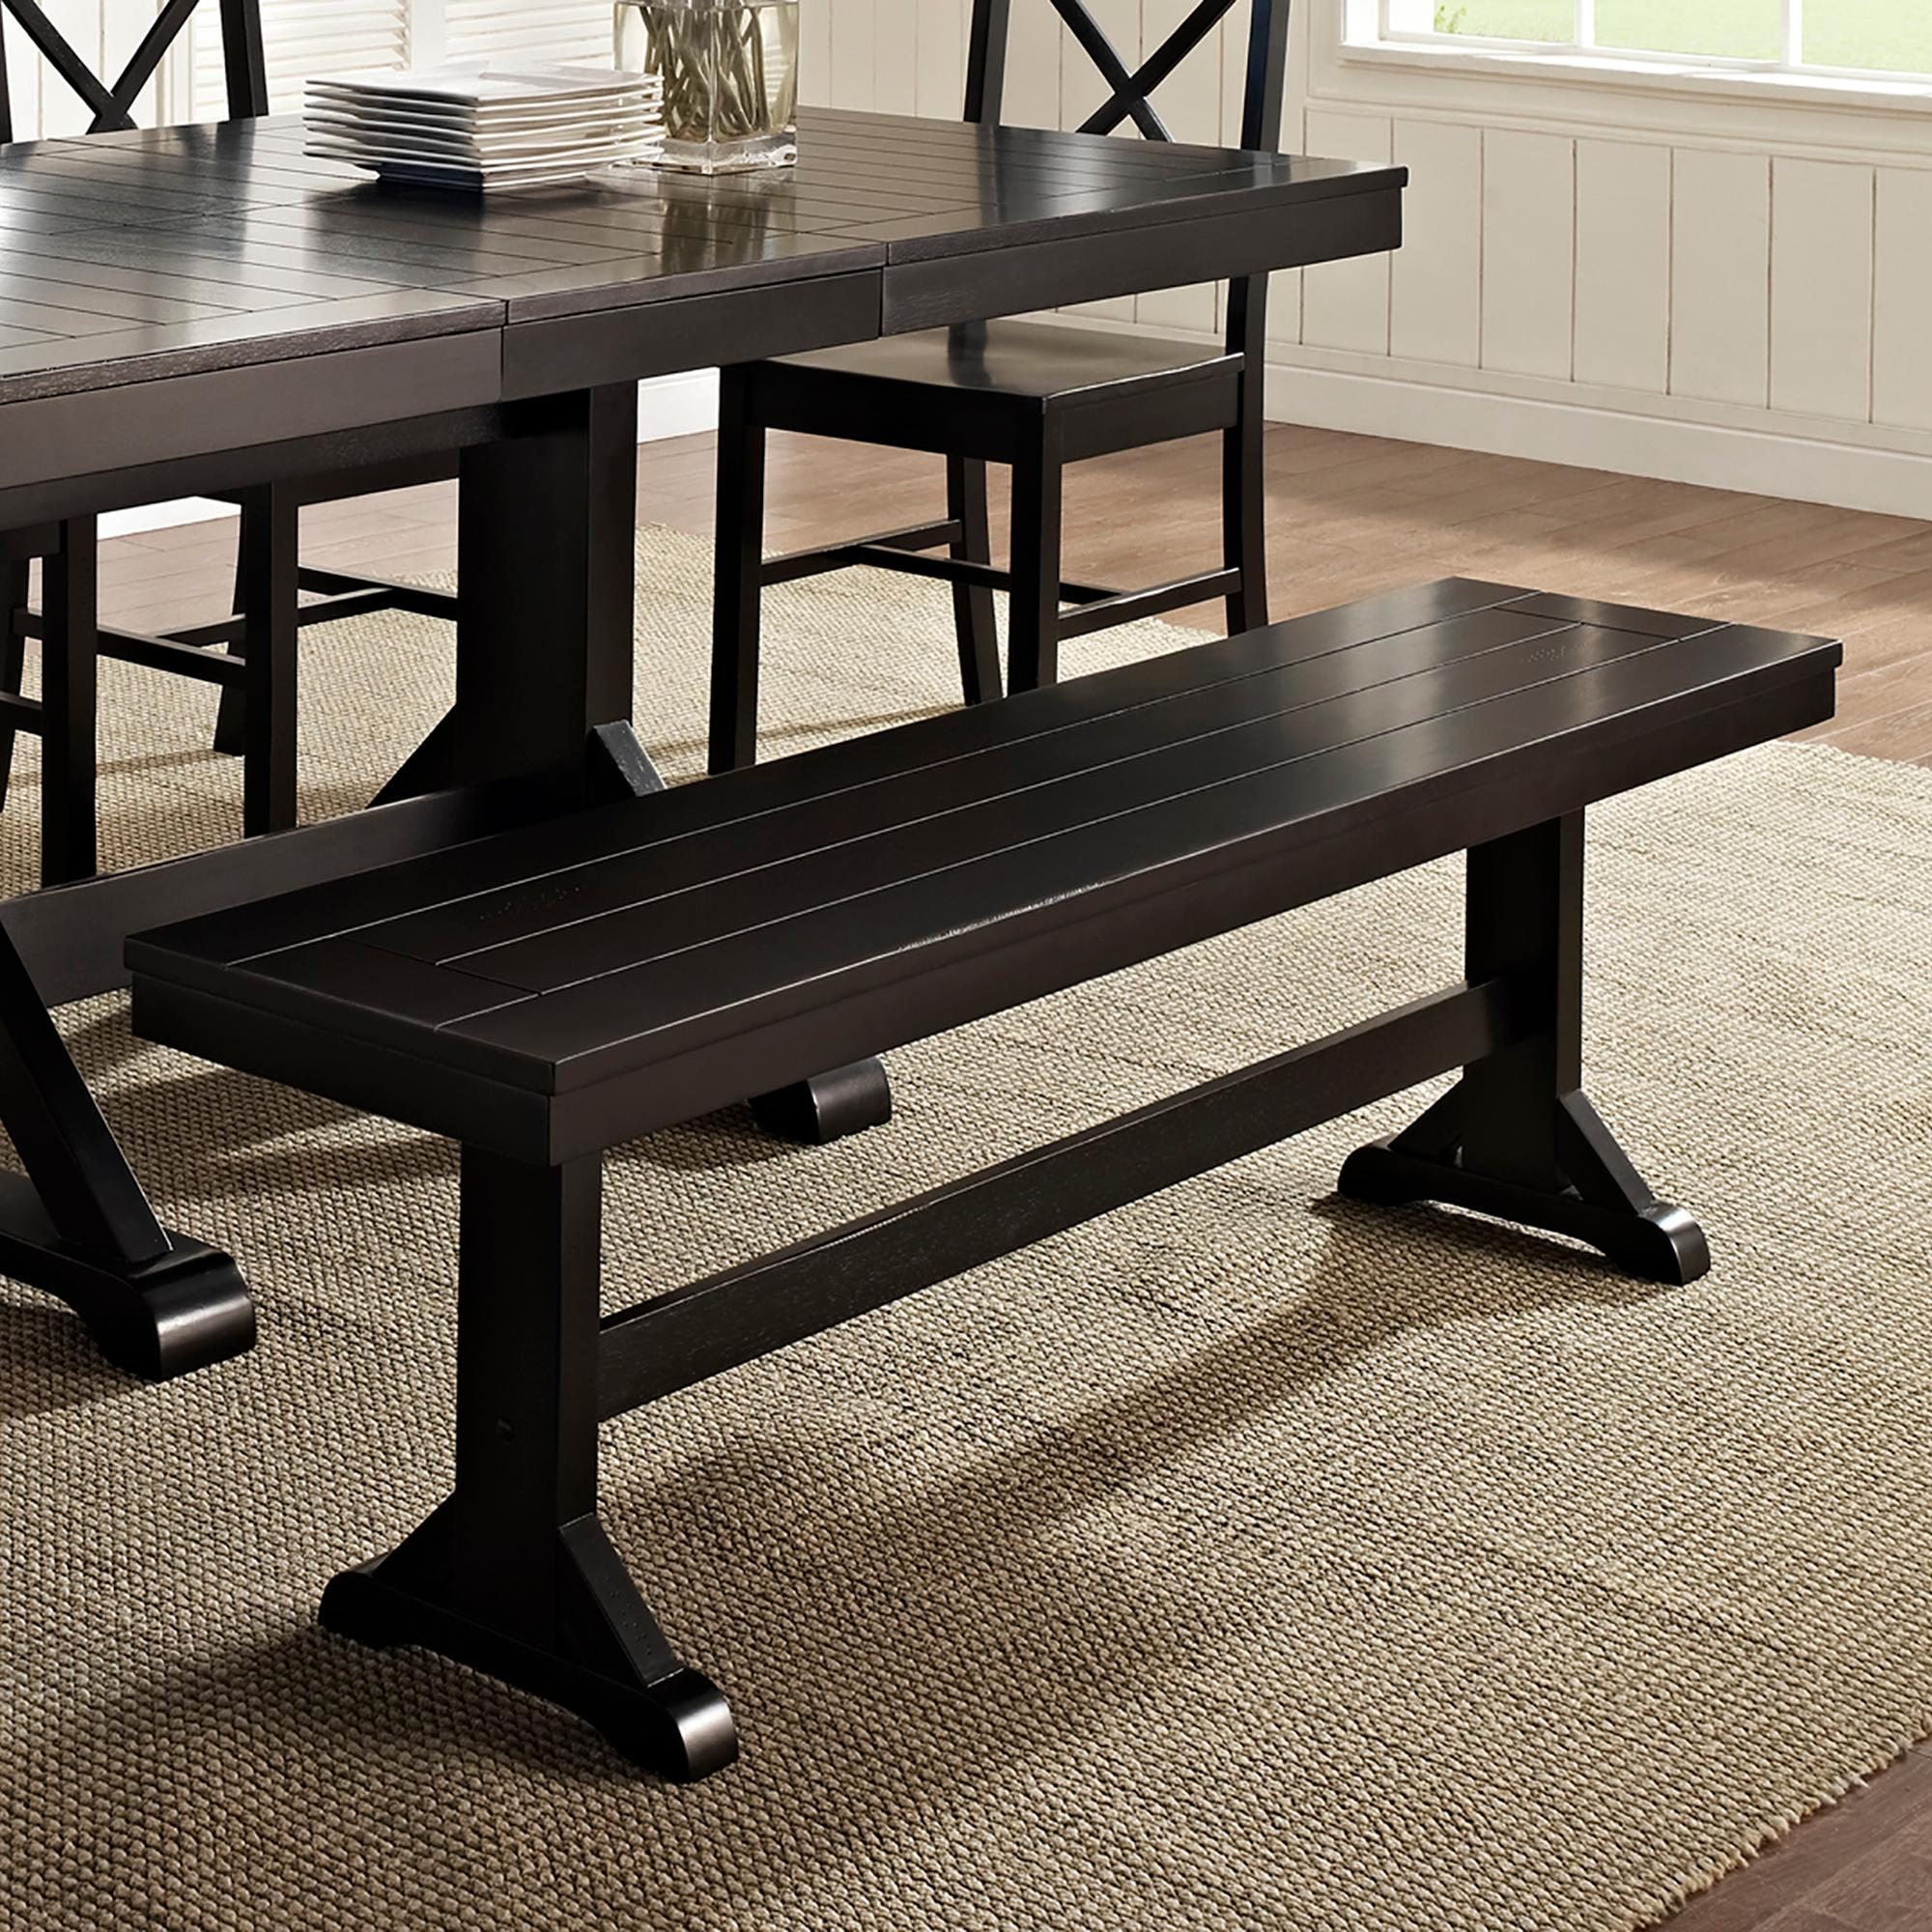 Wood And Black Dining Table: WE Furniture Solid Wood Black Dining Bench